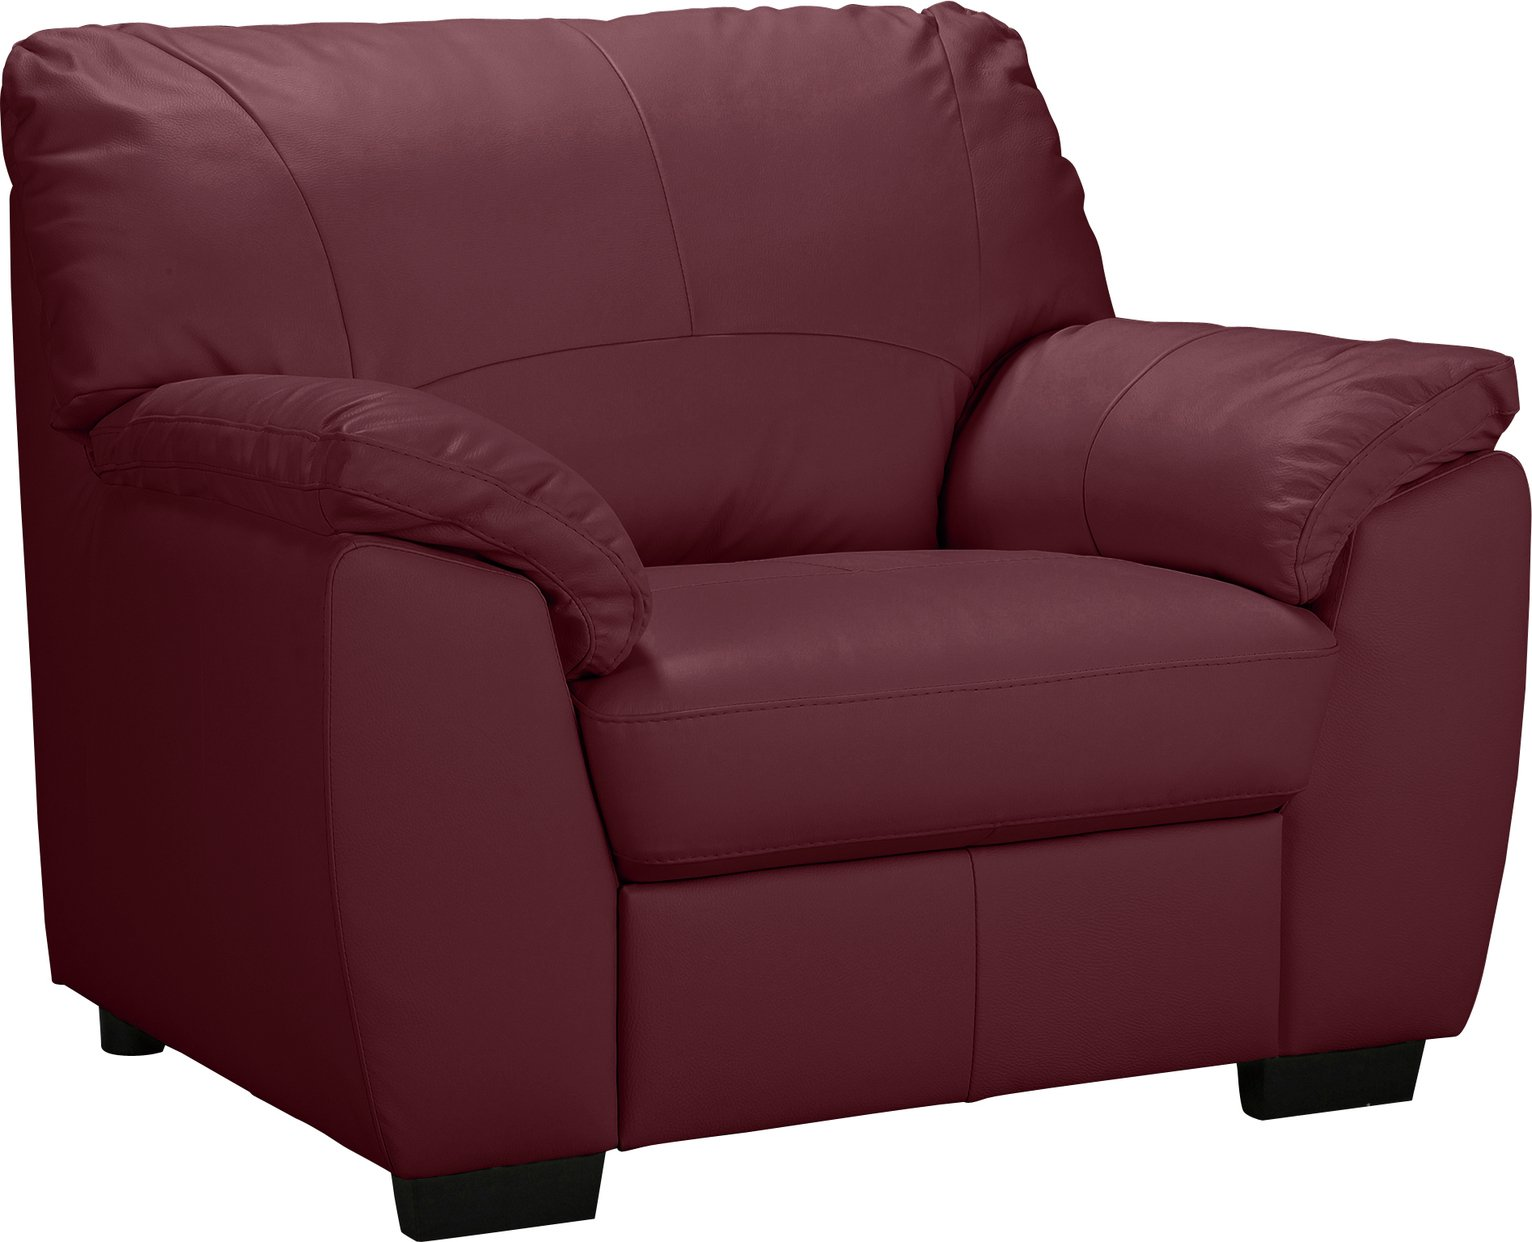 Argos Home Milano Leather Chair and 2 Seater Sofa Burgundy